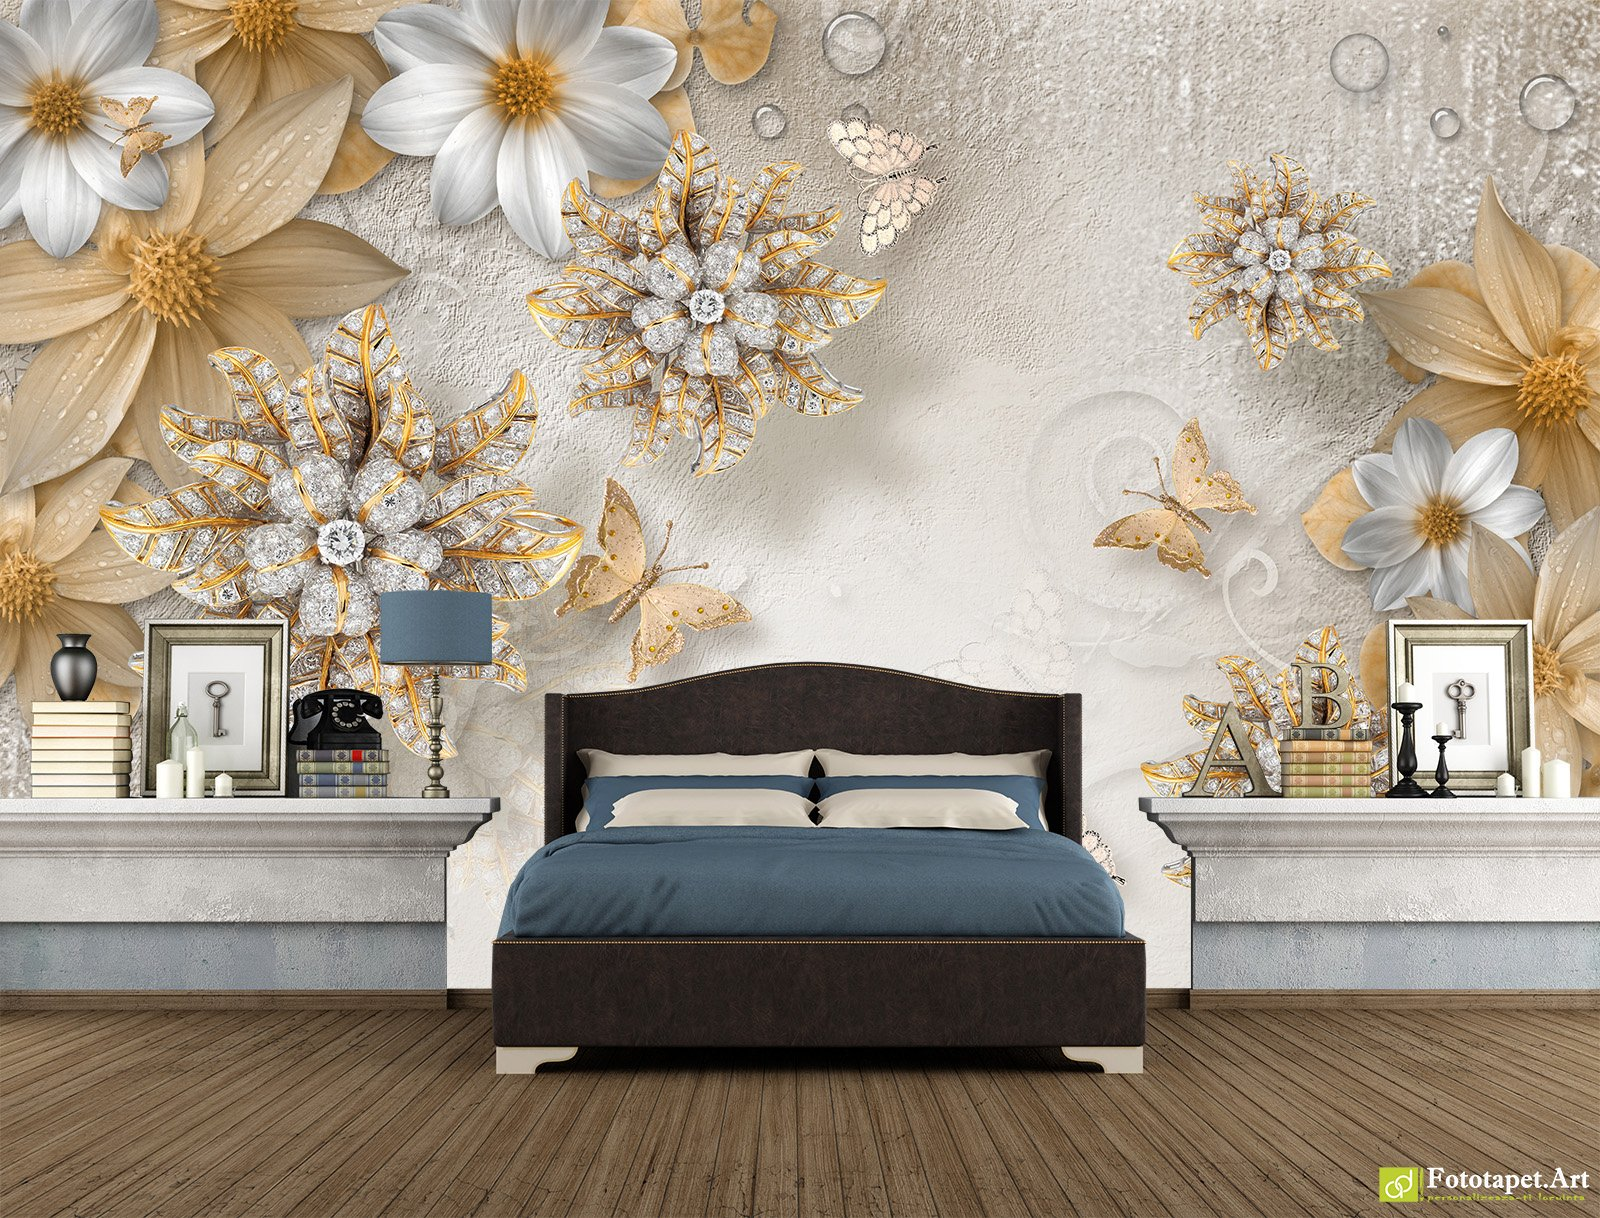 Retro Wallpaper Vintage Wall Murals Flowers And Butterflies On The